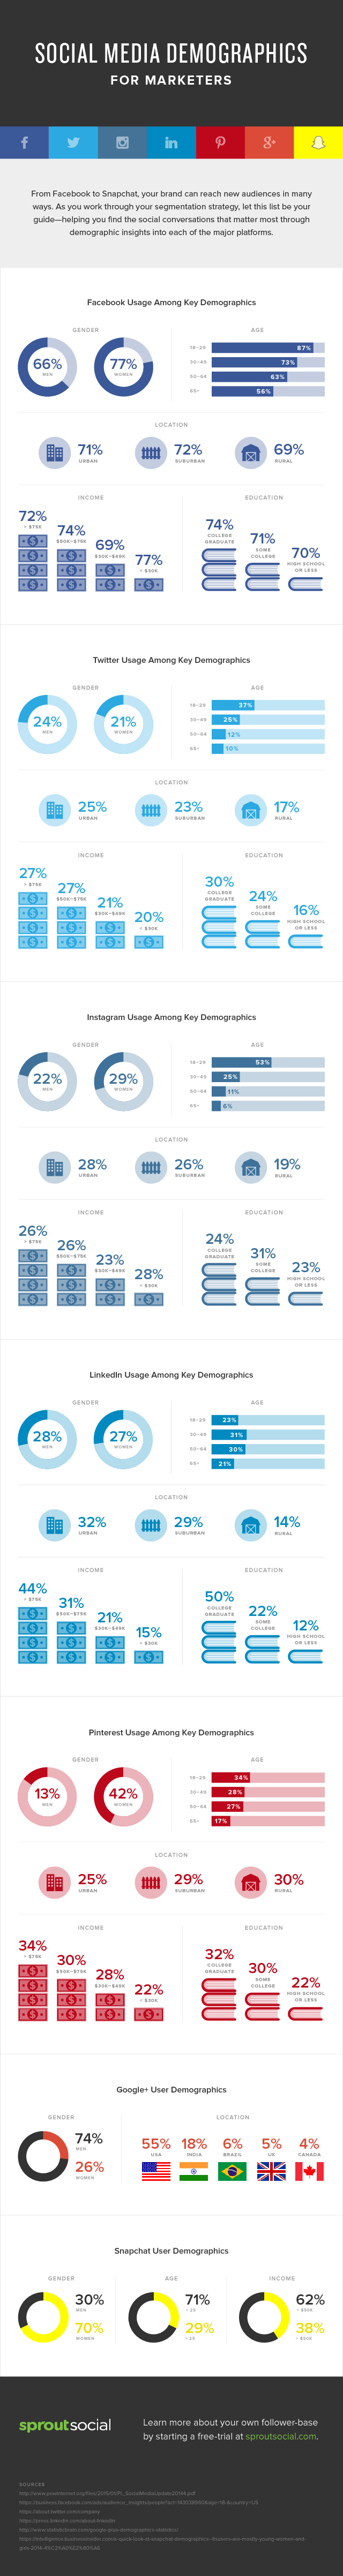 Social Media Demographics for Marketers